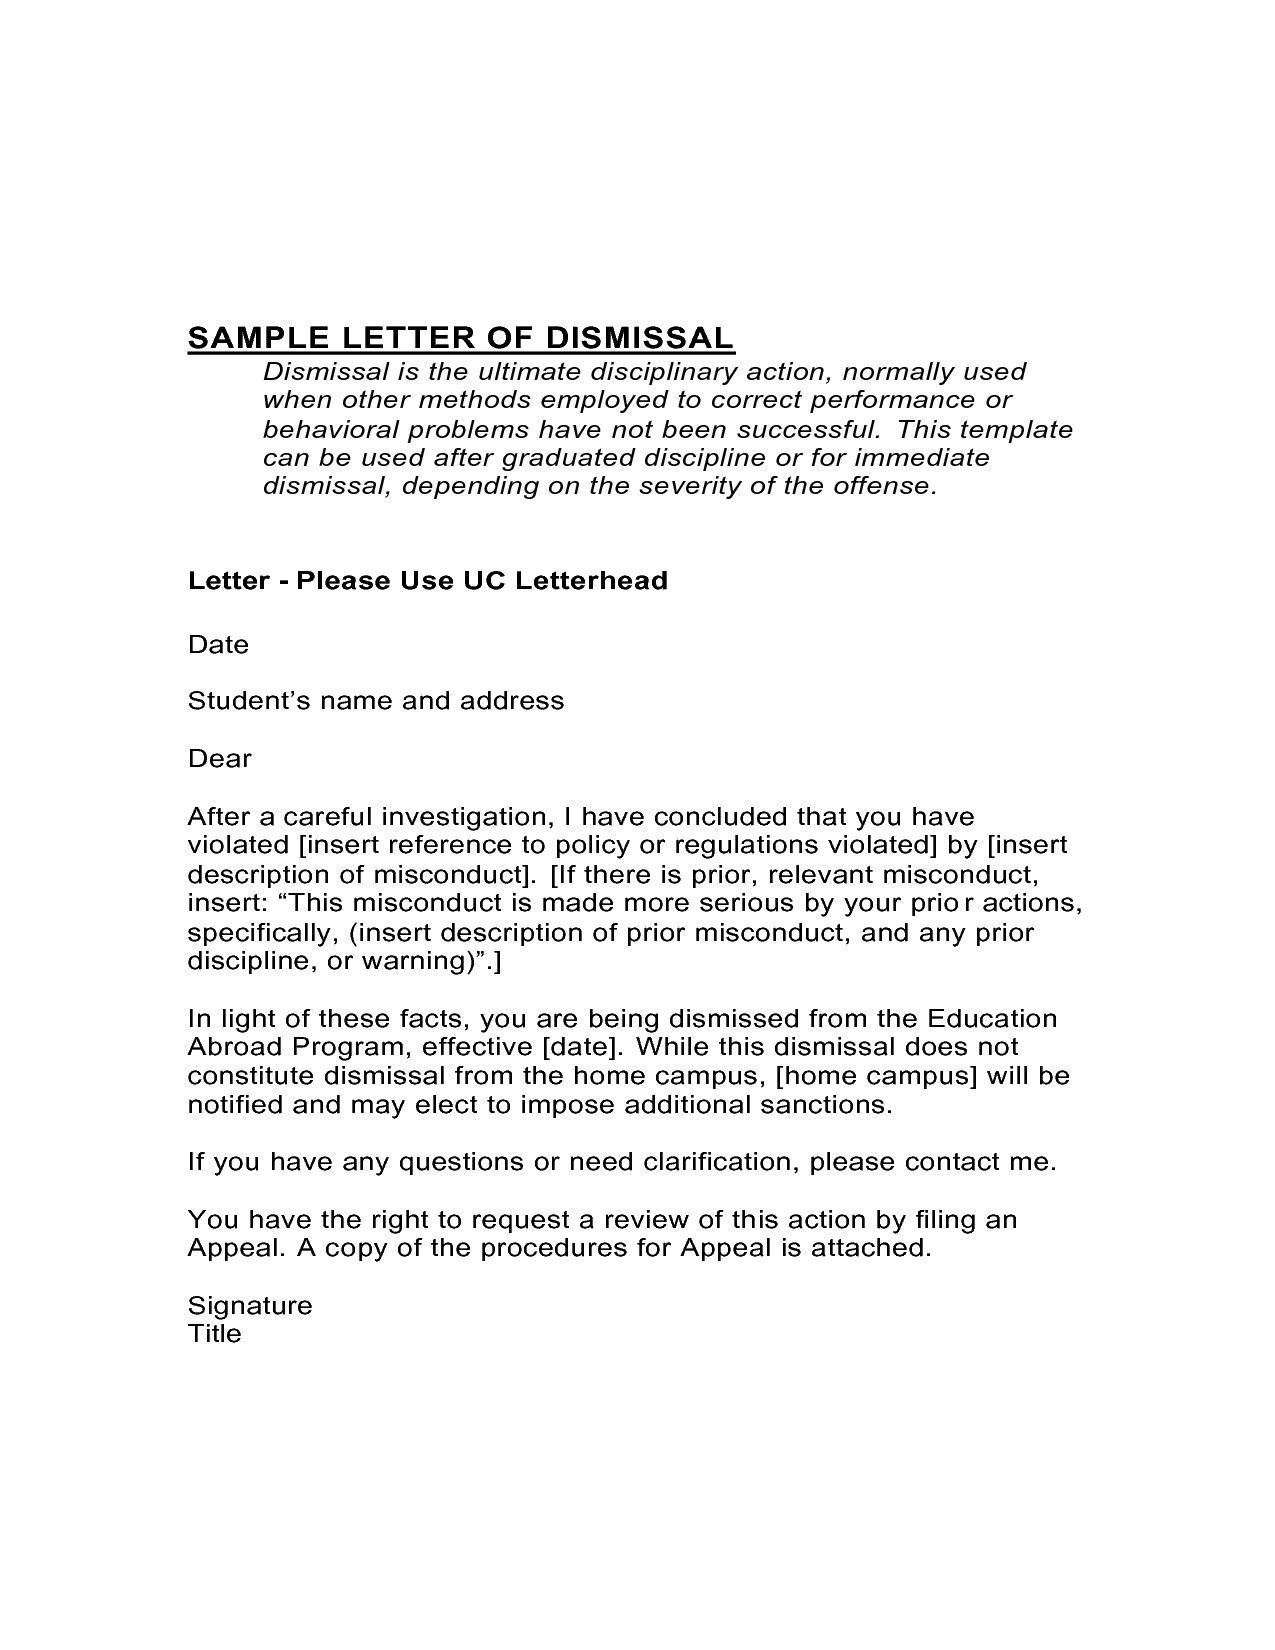 Resignation Letter Template Acas 5 Things You Need To Know About Resignation Letter Template Resignation Letter Letter Templates Lettering